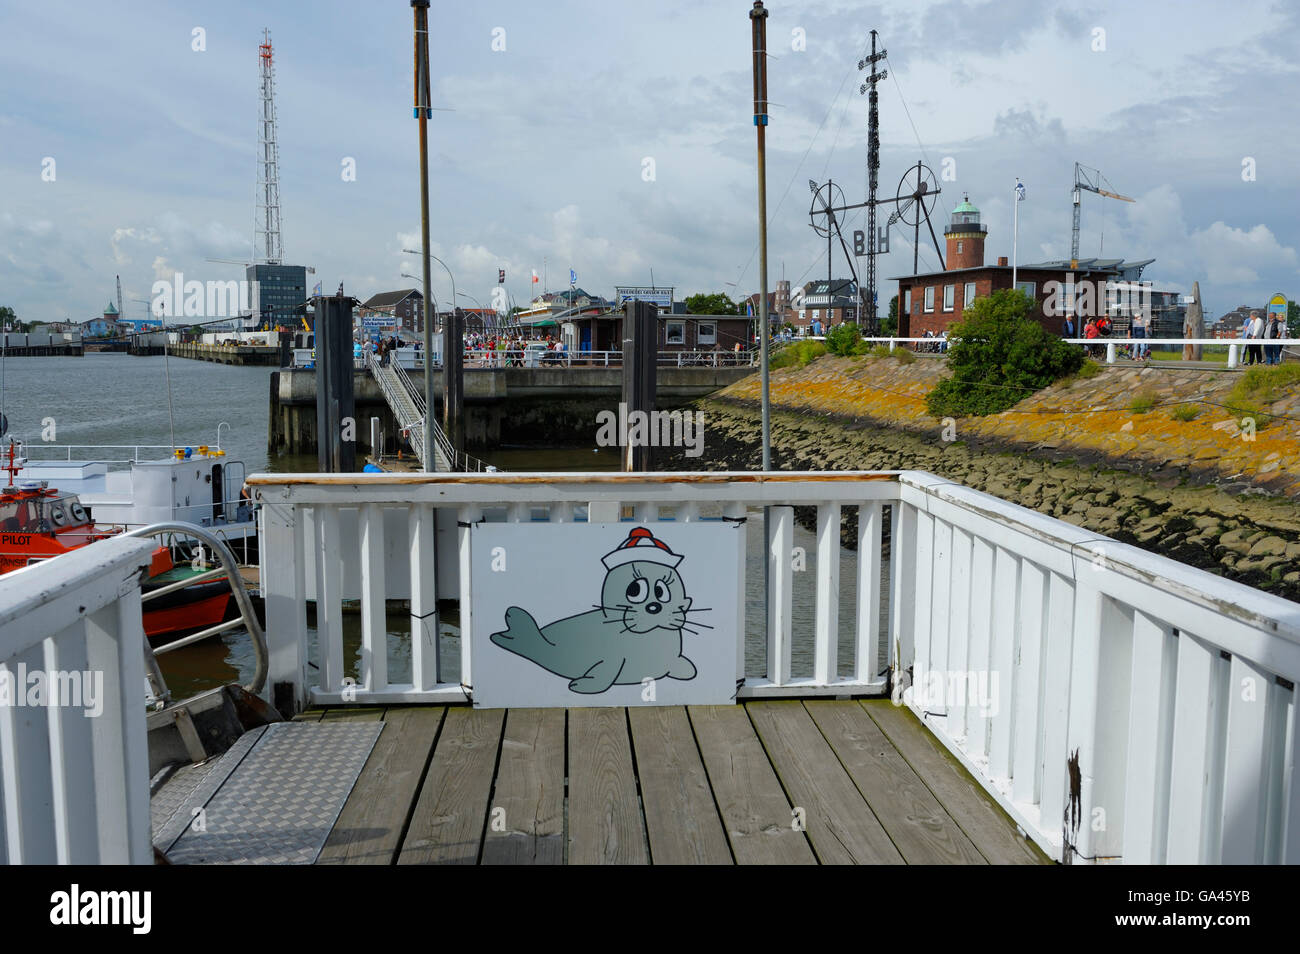 Harbour, Cuxhaven, Germany - Stock Image